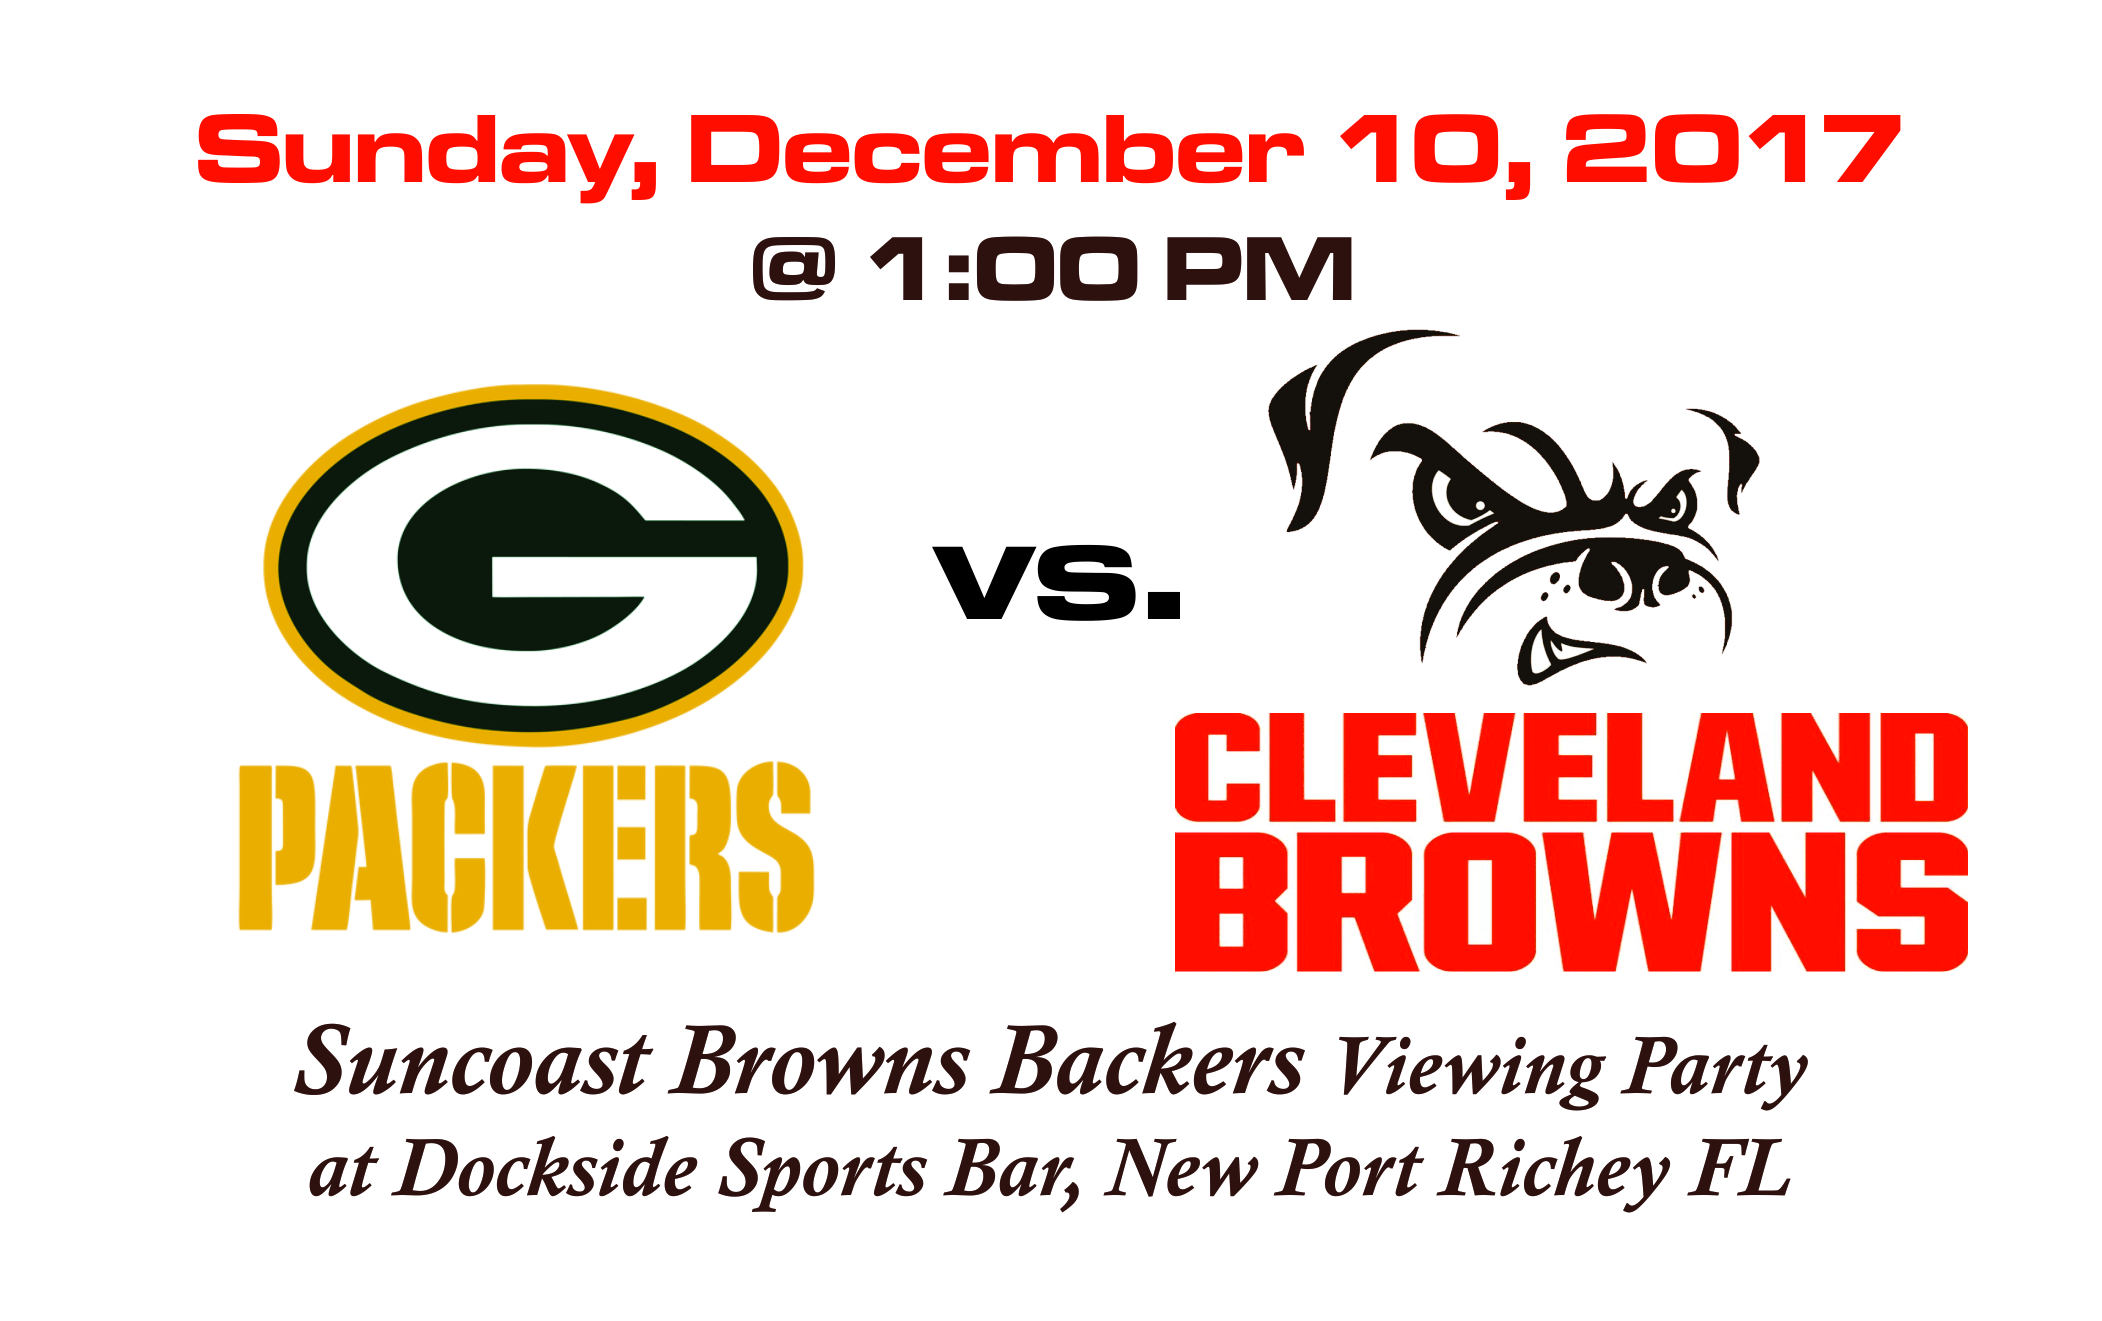 Packers_Browns121017